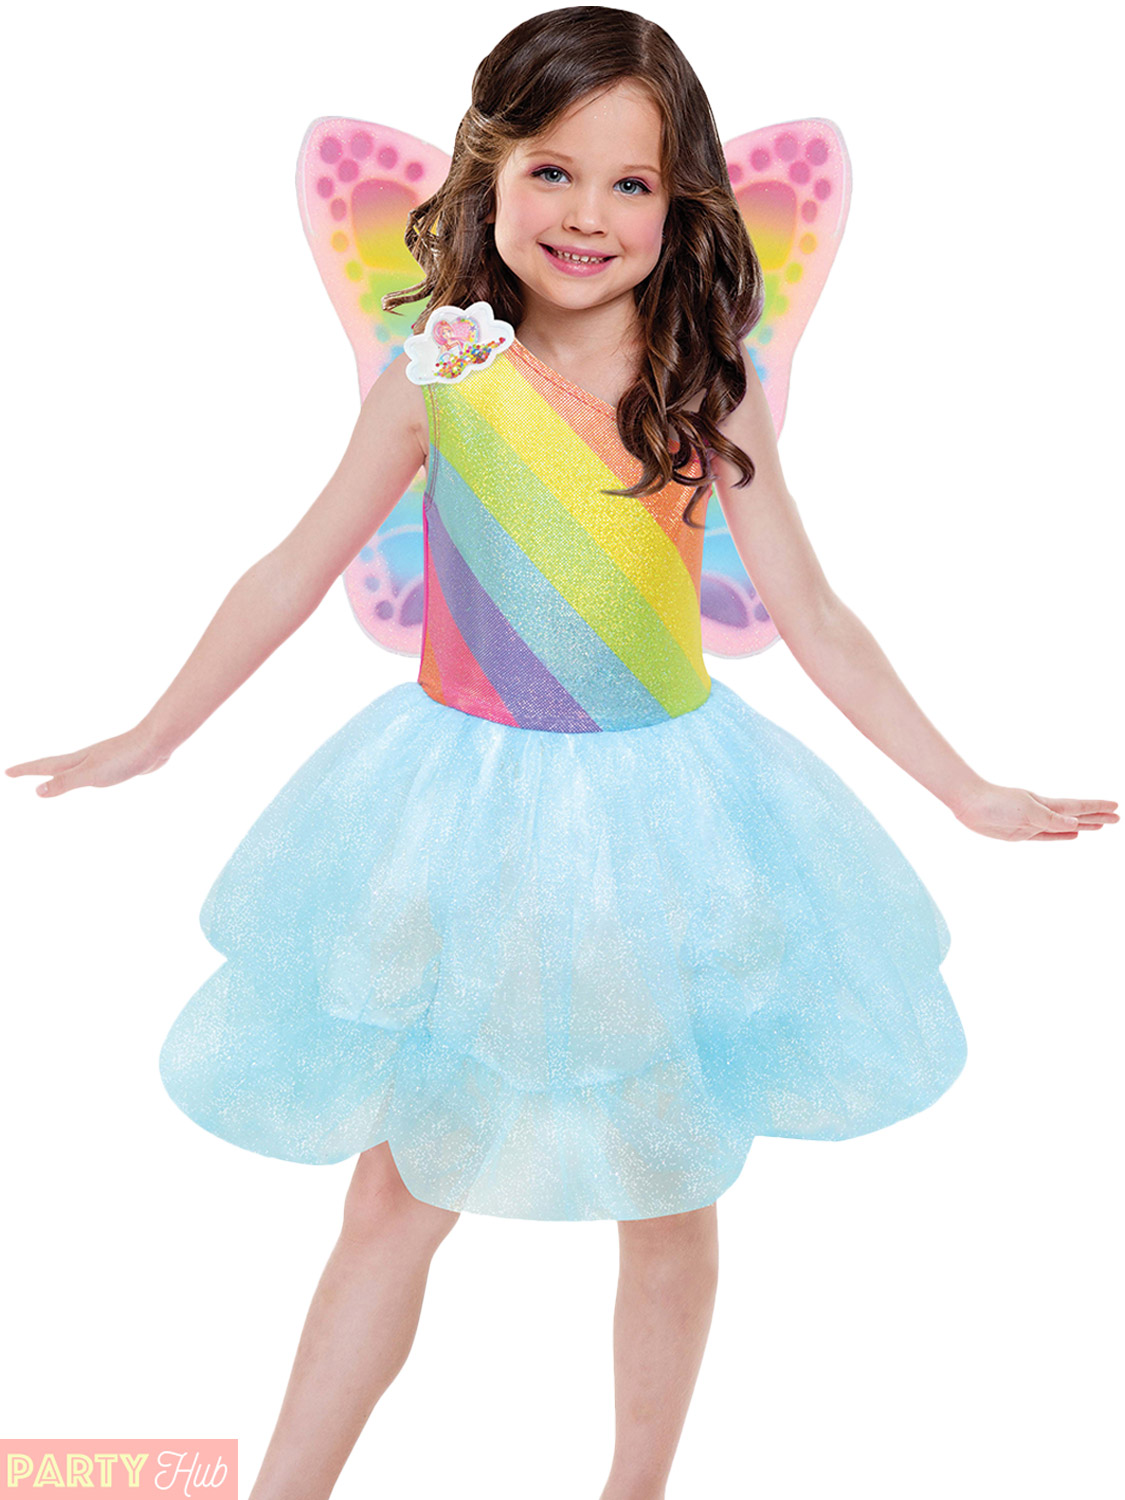 Girls-Barbie-Costume-Childs-Cloud-Tutu-Rainbow-Magic-  sc 1 st  eBay & Girls Barbie Costume Childs Cloud Tutu Rainbow Magic Fancy Dress ...